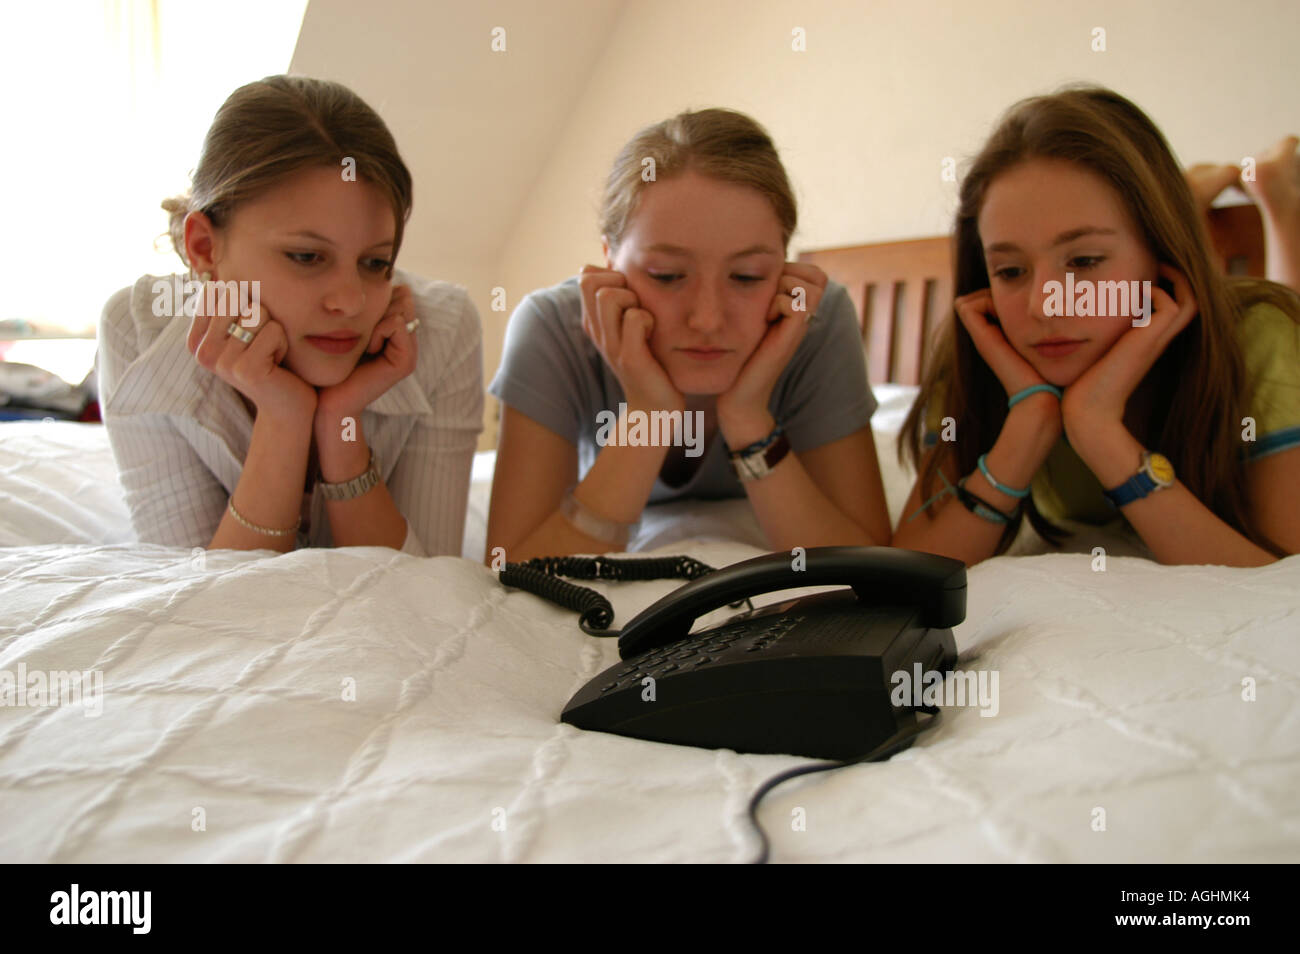 Teenage girls with hand on chin starring at telephone - Stock Image